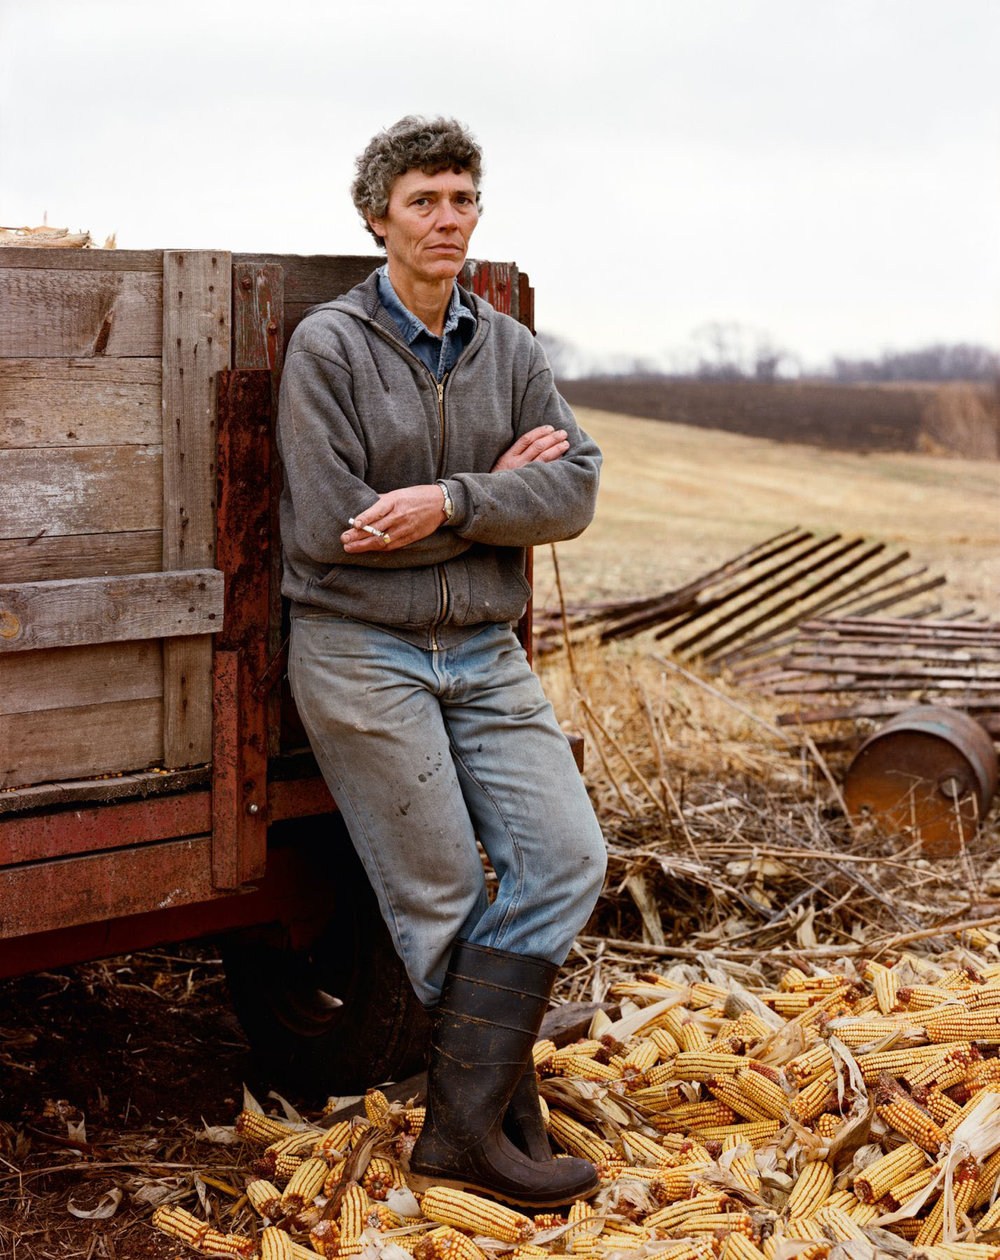 A Farmer Taking a Break, Iowa, She has Cancer of the Thyroid, November 1986